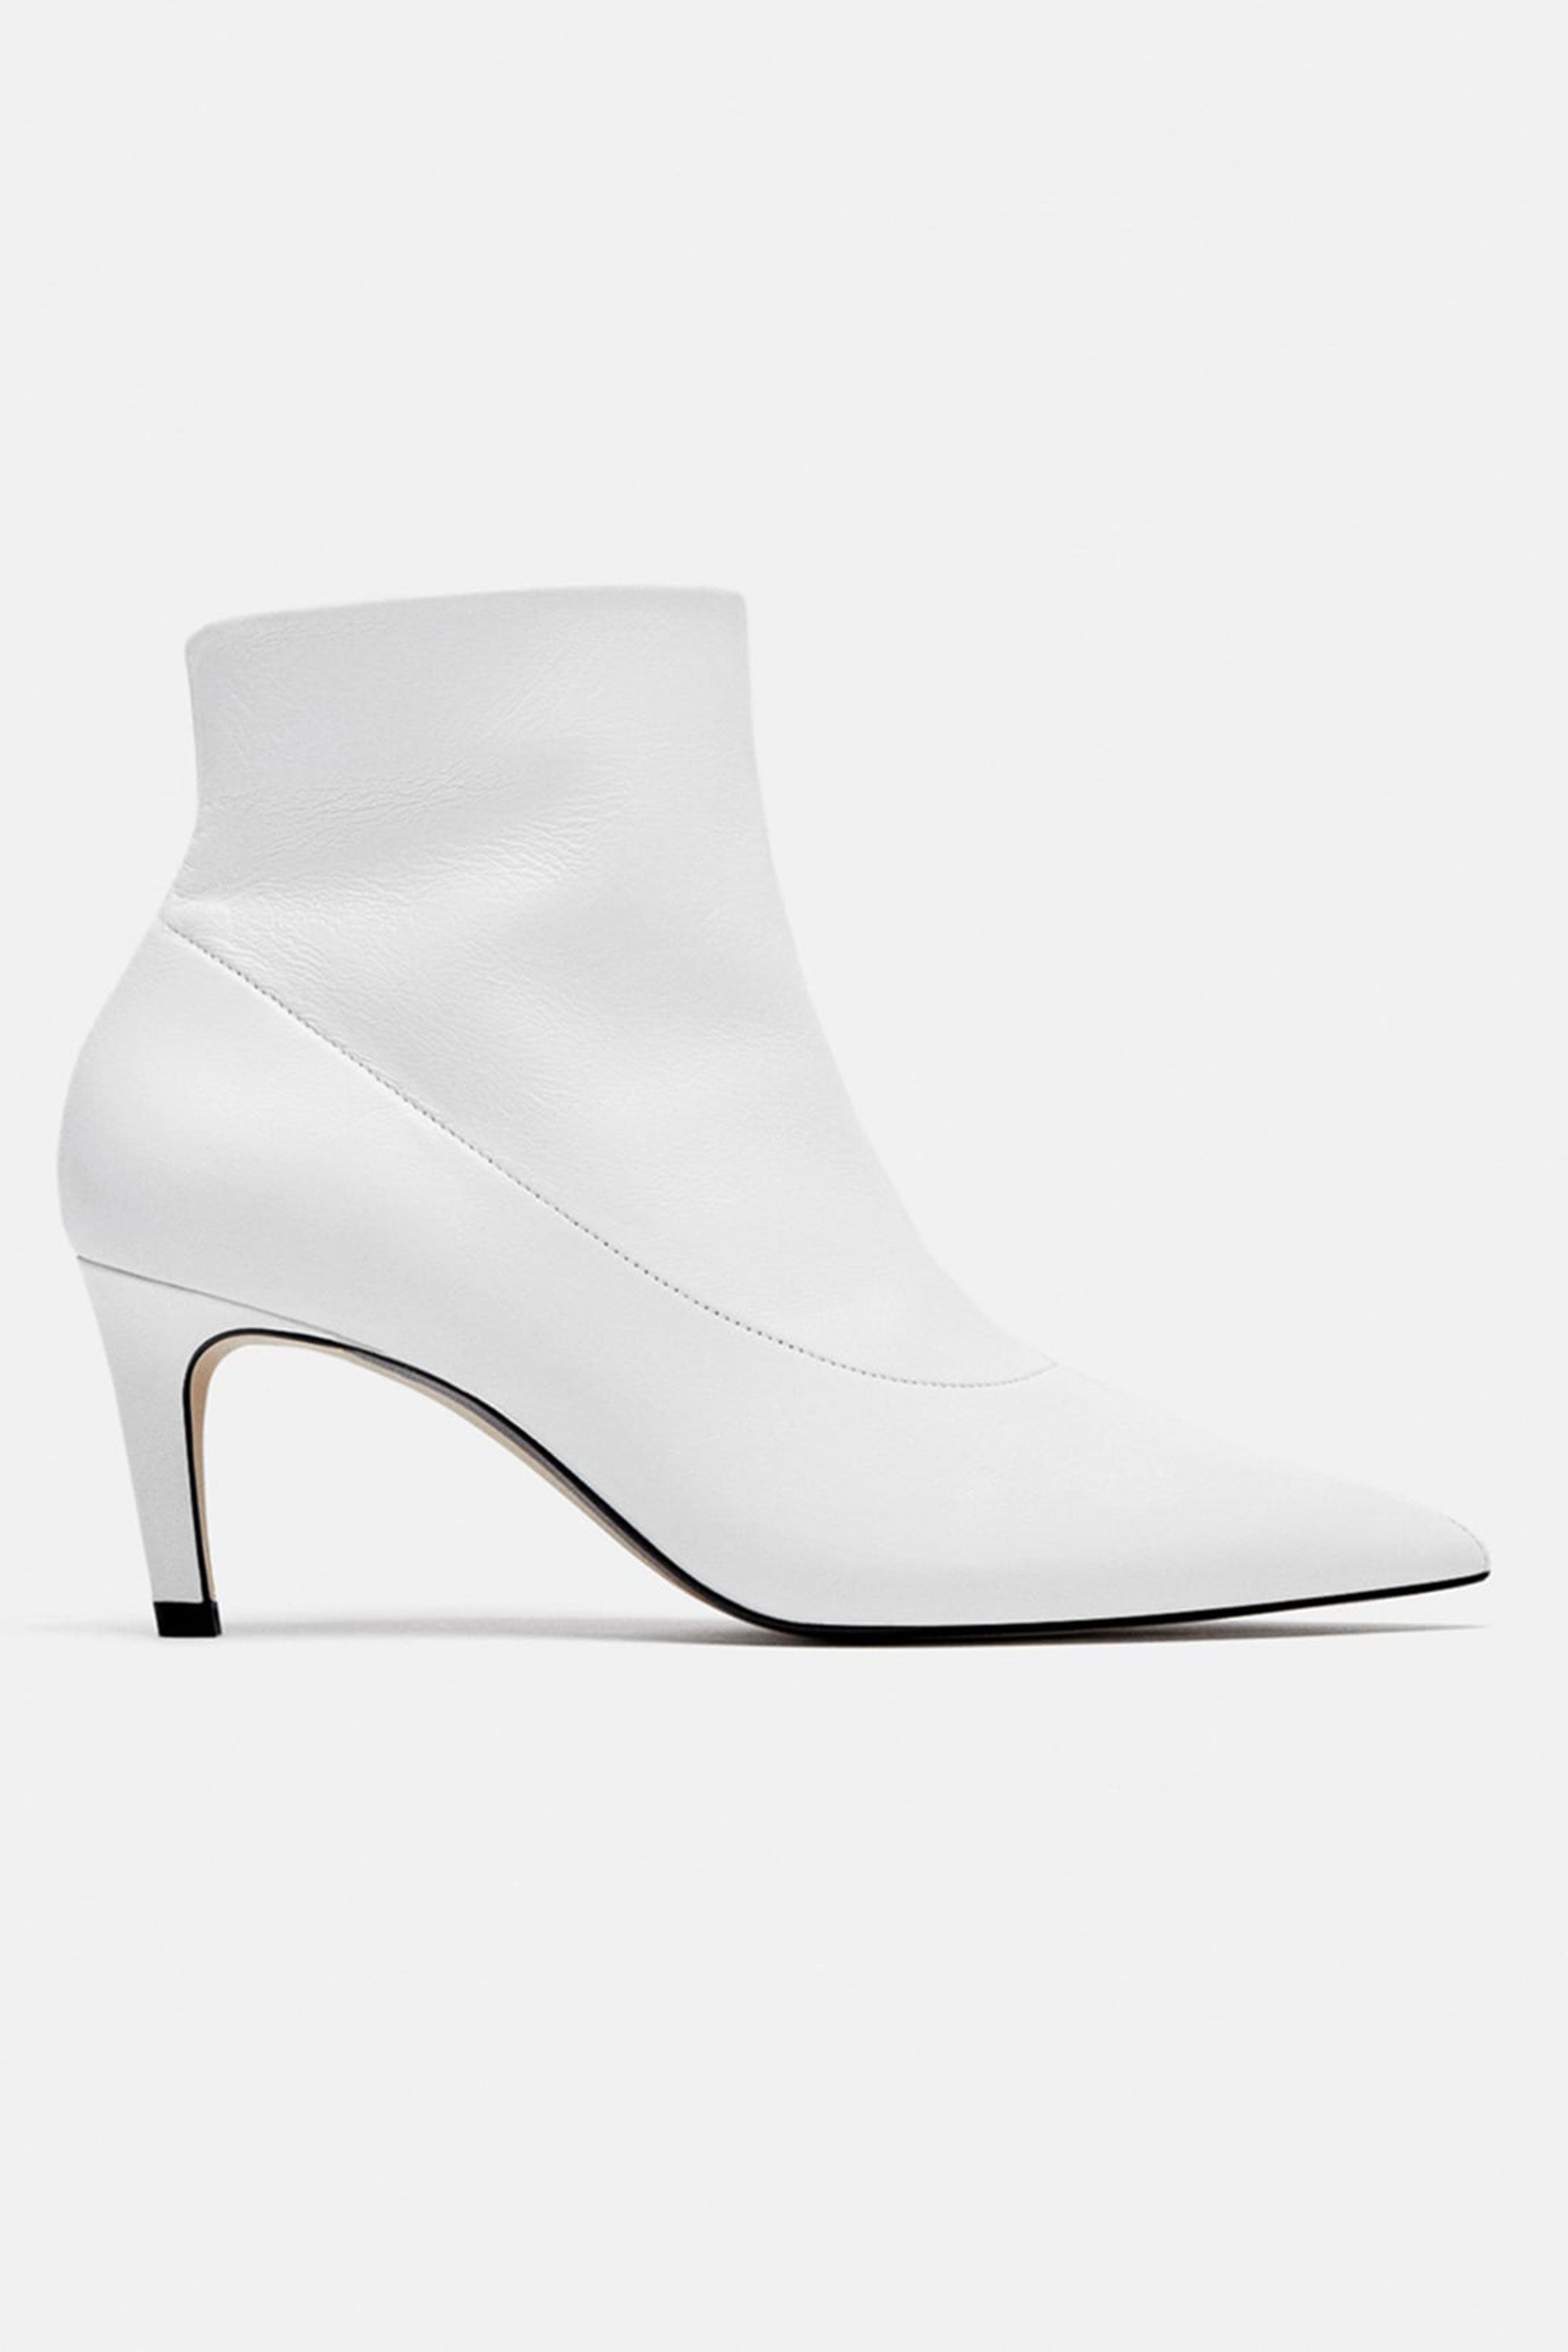 a0d6bf434cc 10 best white boots to buy for autumn 2018 – How to wear white boots